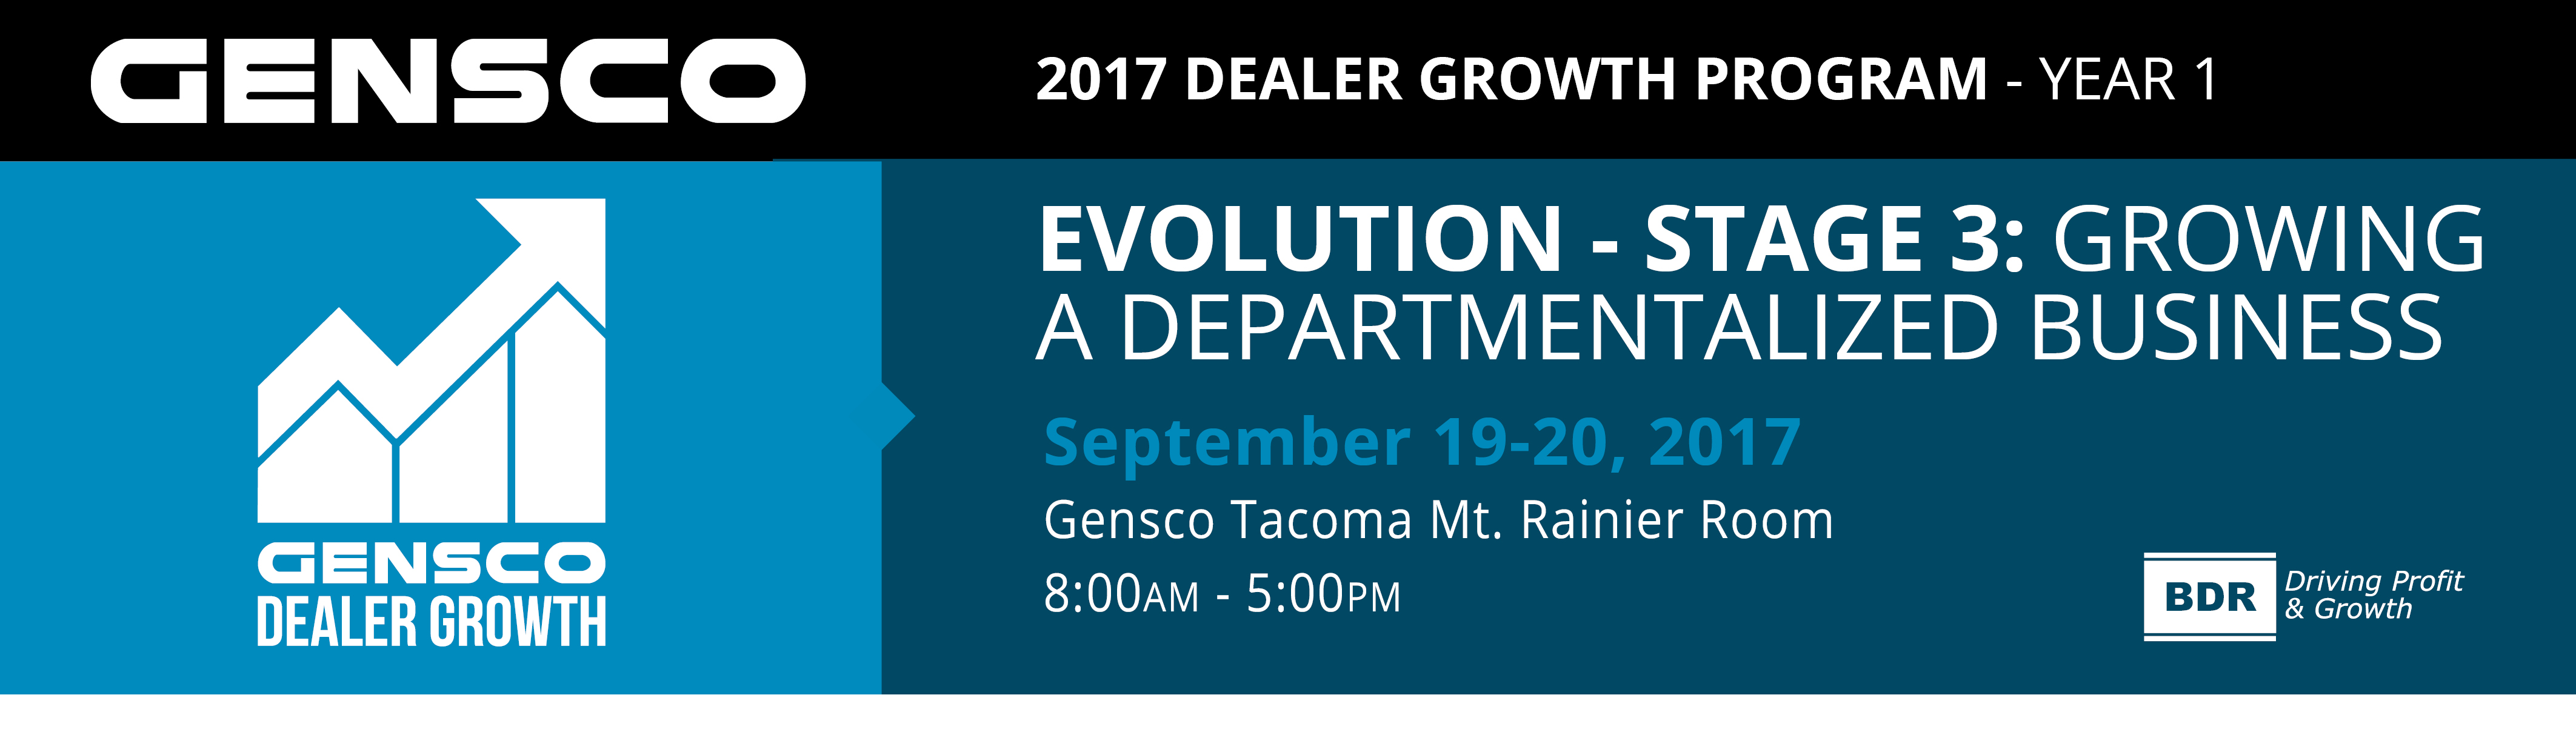 2017 Dealer Growth Headers4